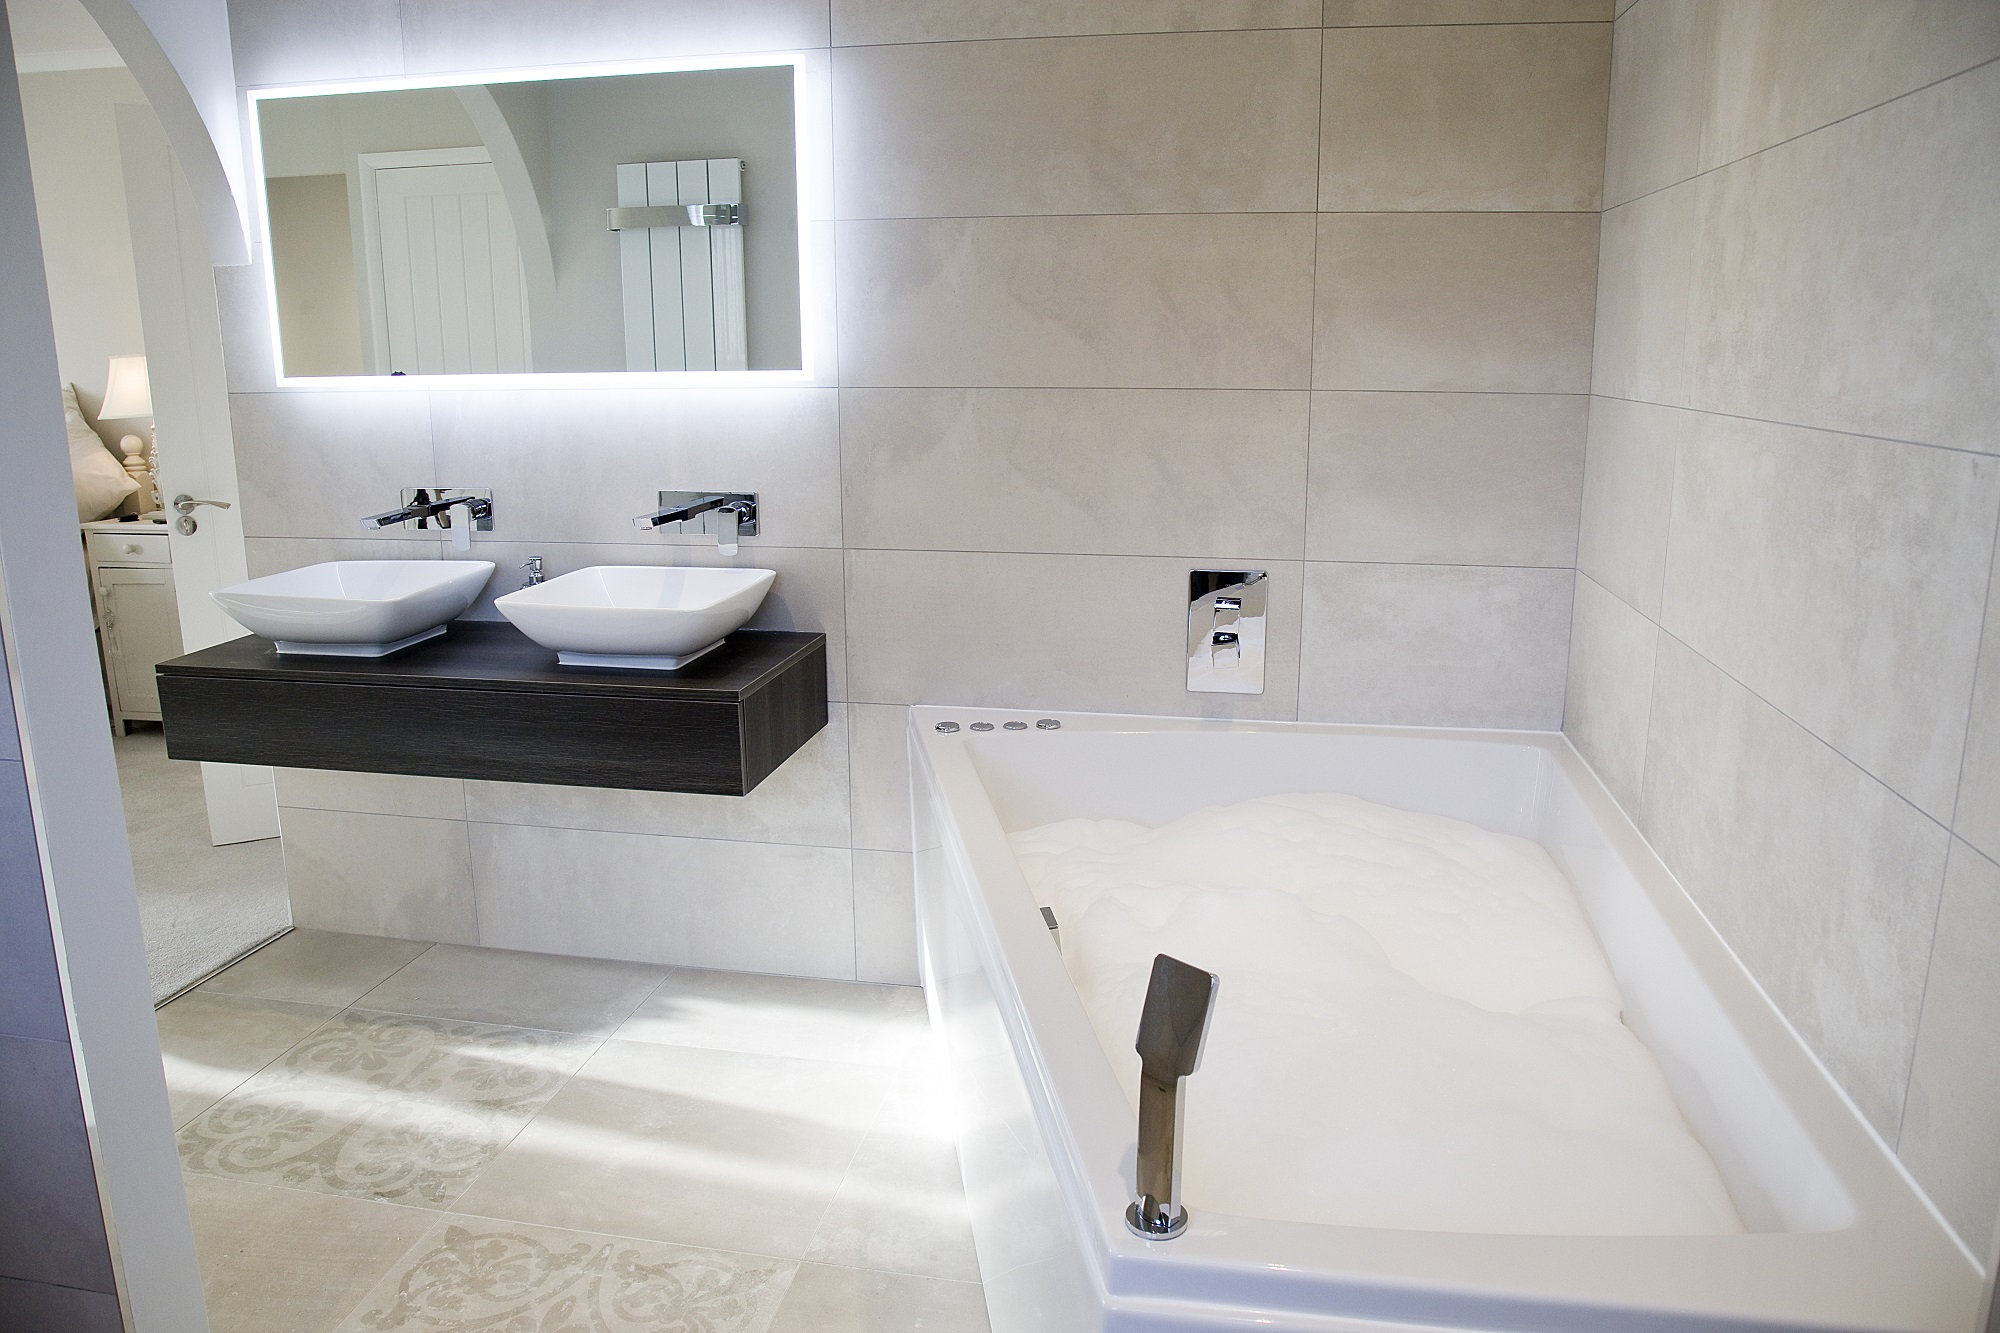 Luxurious bathroom installations apollo design for Bathroom designs normal